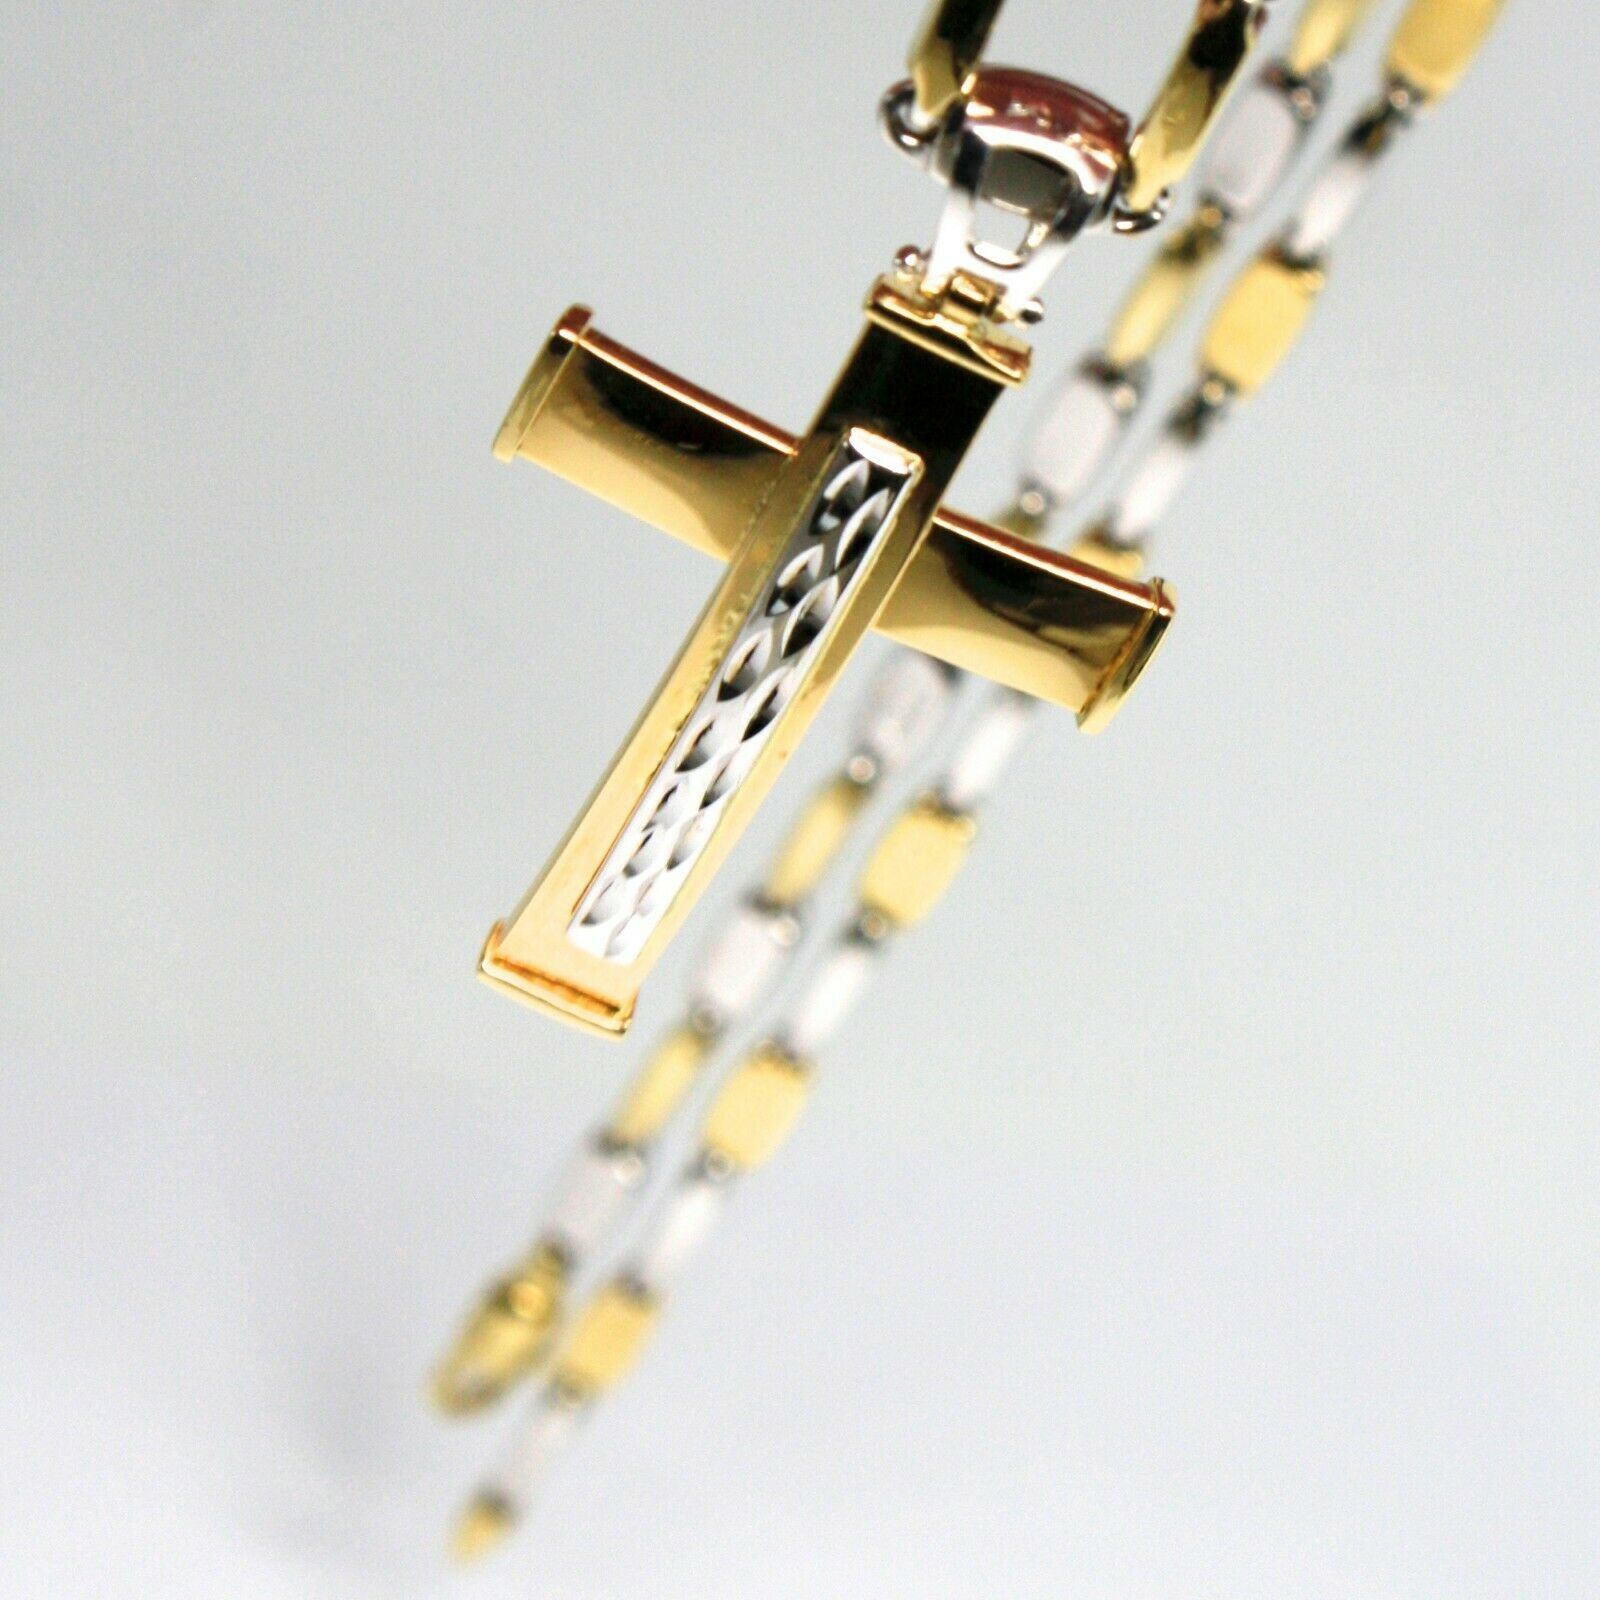 18K YELLOW WHITE GOLD TUBE ALTERNATE CHAIN, 20 INCHES & WORKED CURVED CROSS